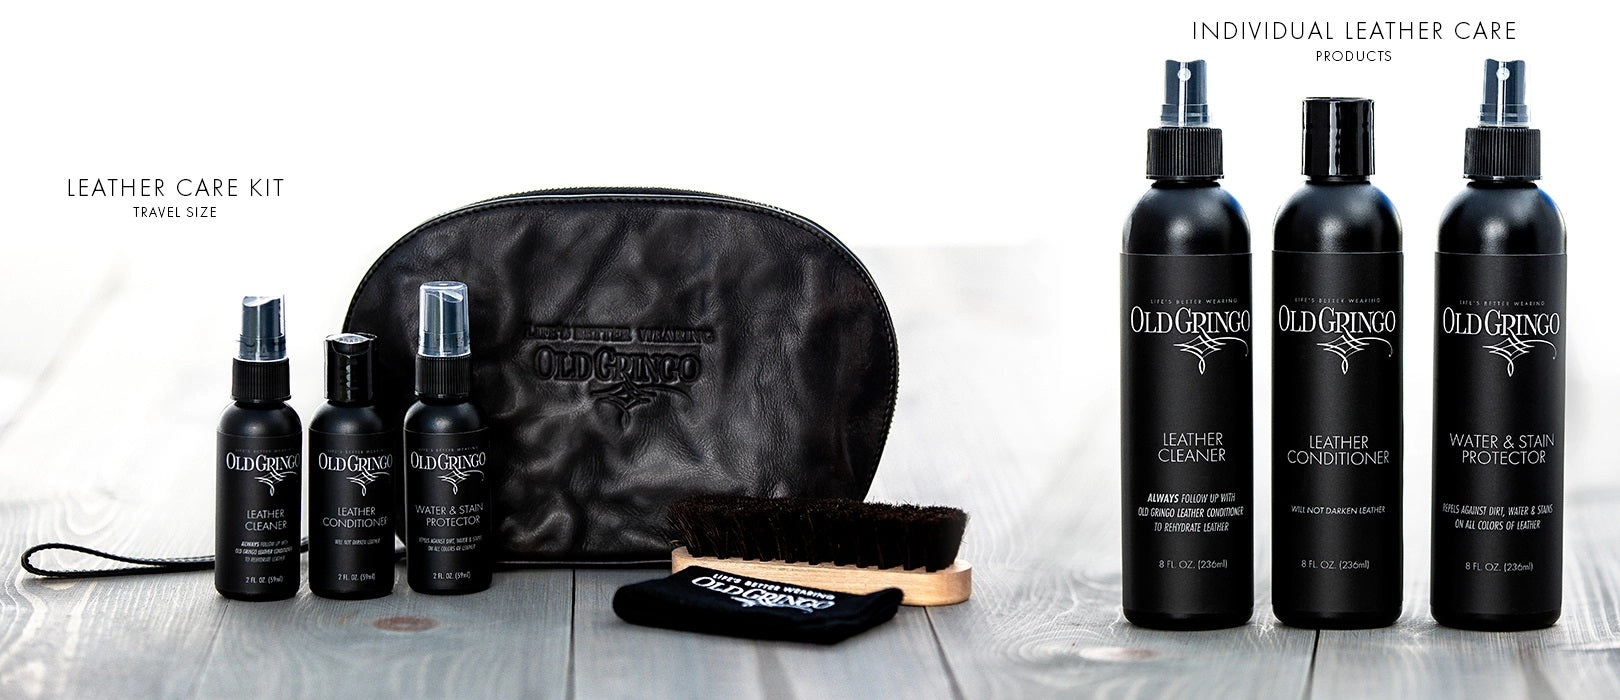 Old Gringo Leather Care Kit